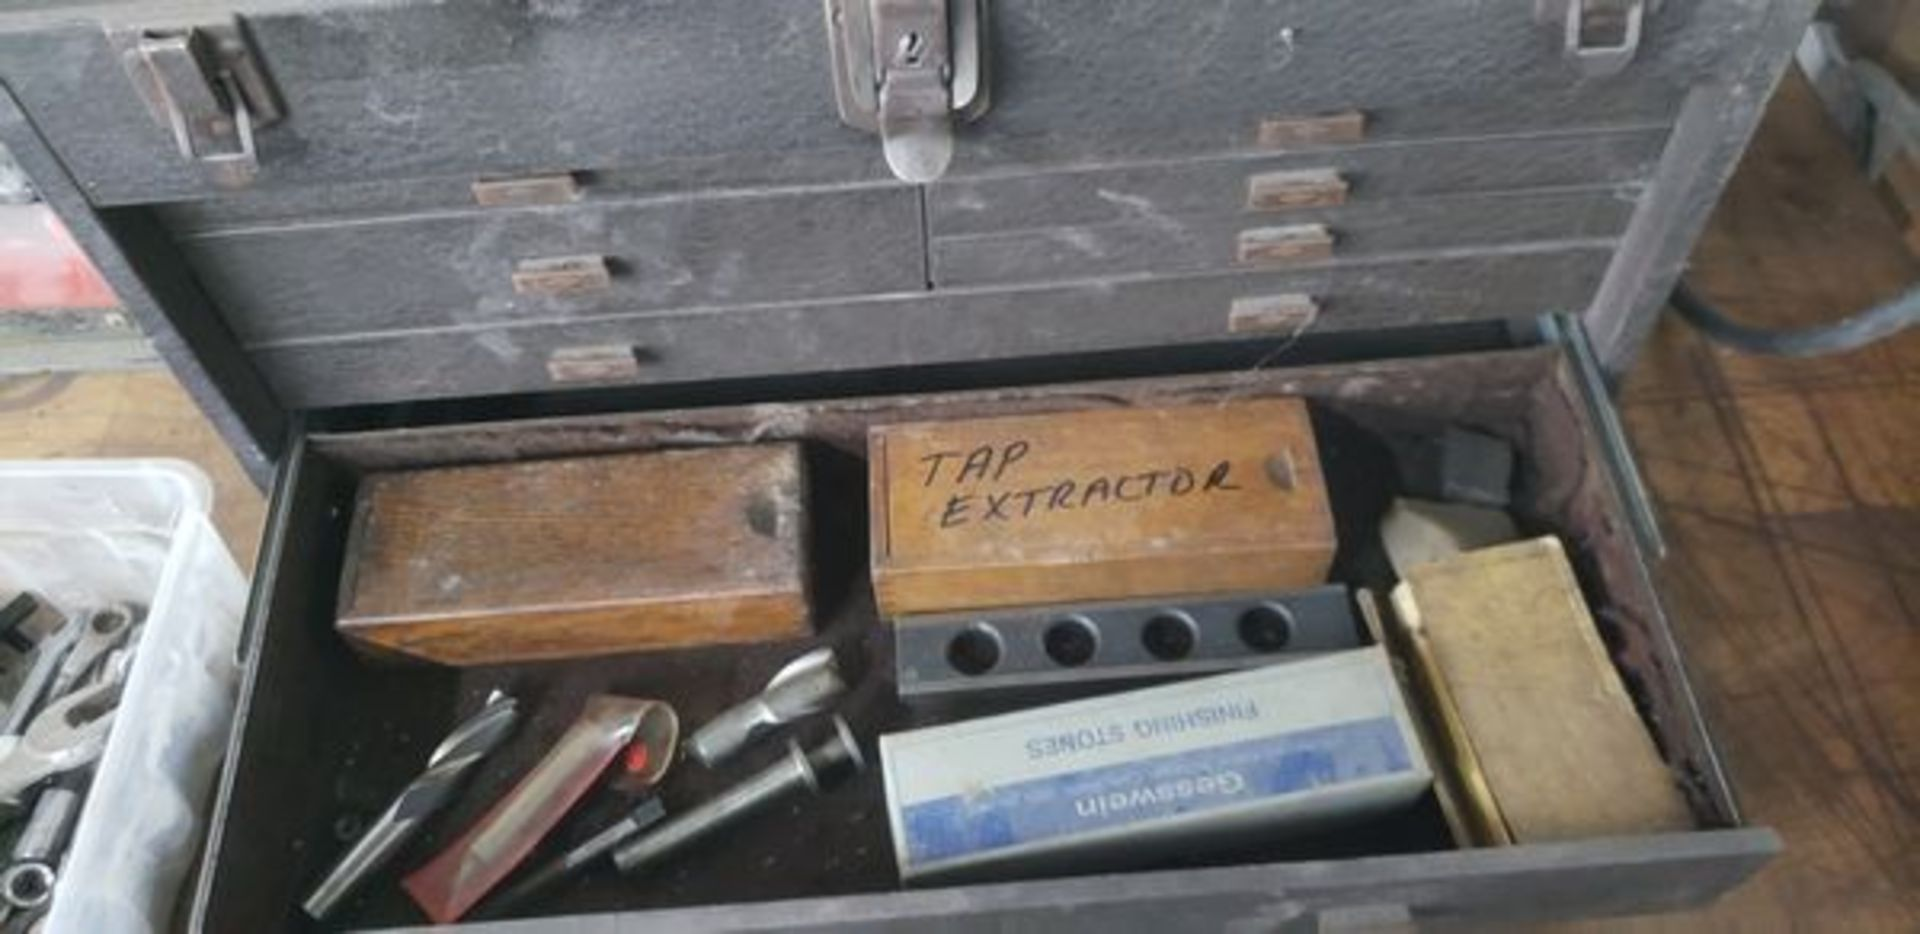 KENNEDY MACHINIST TOOL CHEST WITH CONTENTS - Image 11 of 11